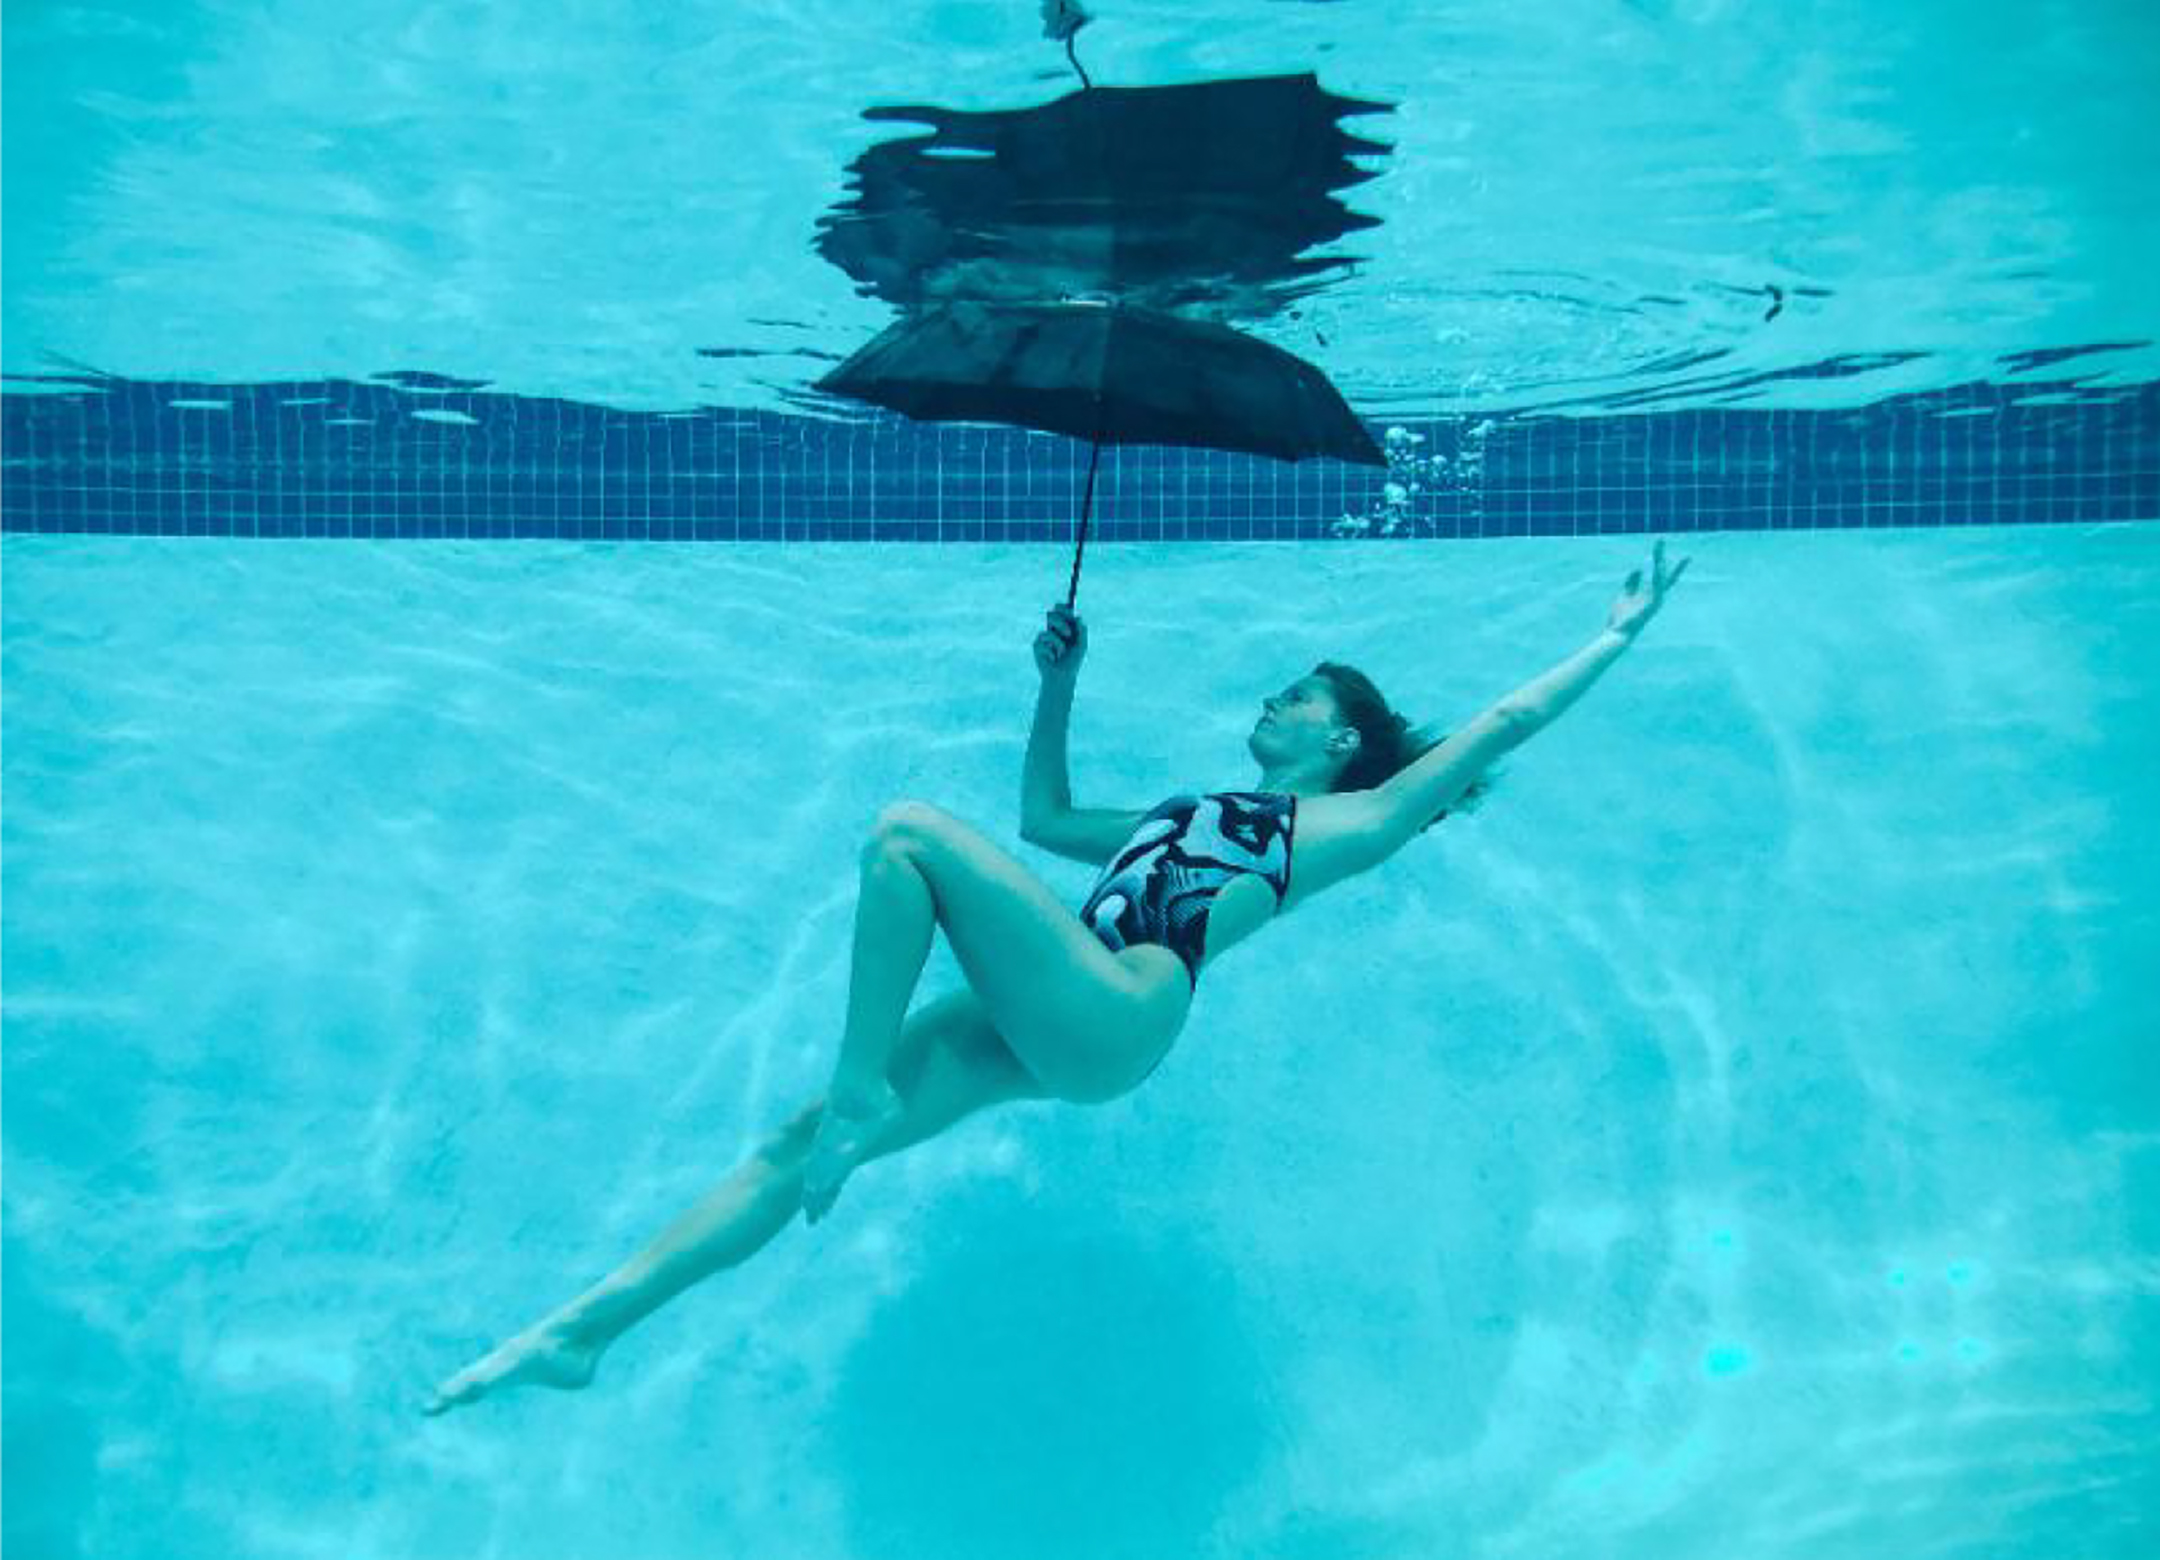 Photograph of a young woman in a swimsuit holding an umbrella while submerged under water in a swimming pool